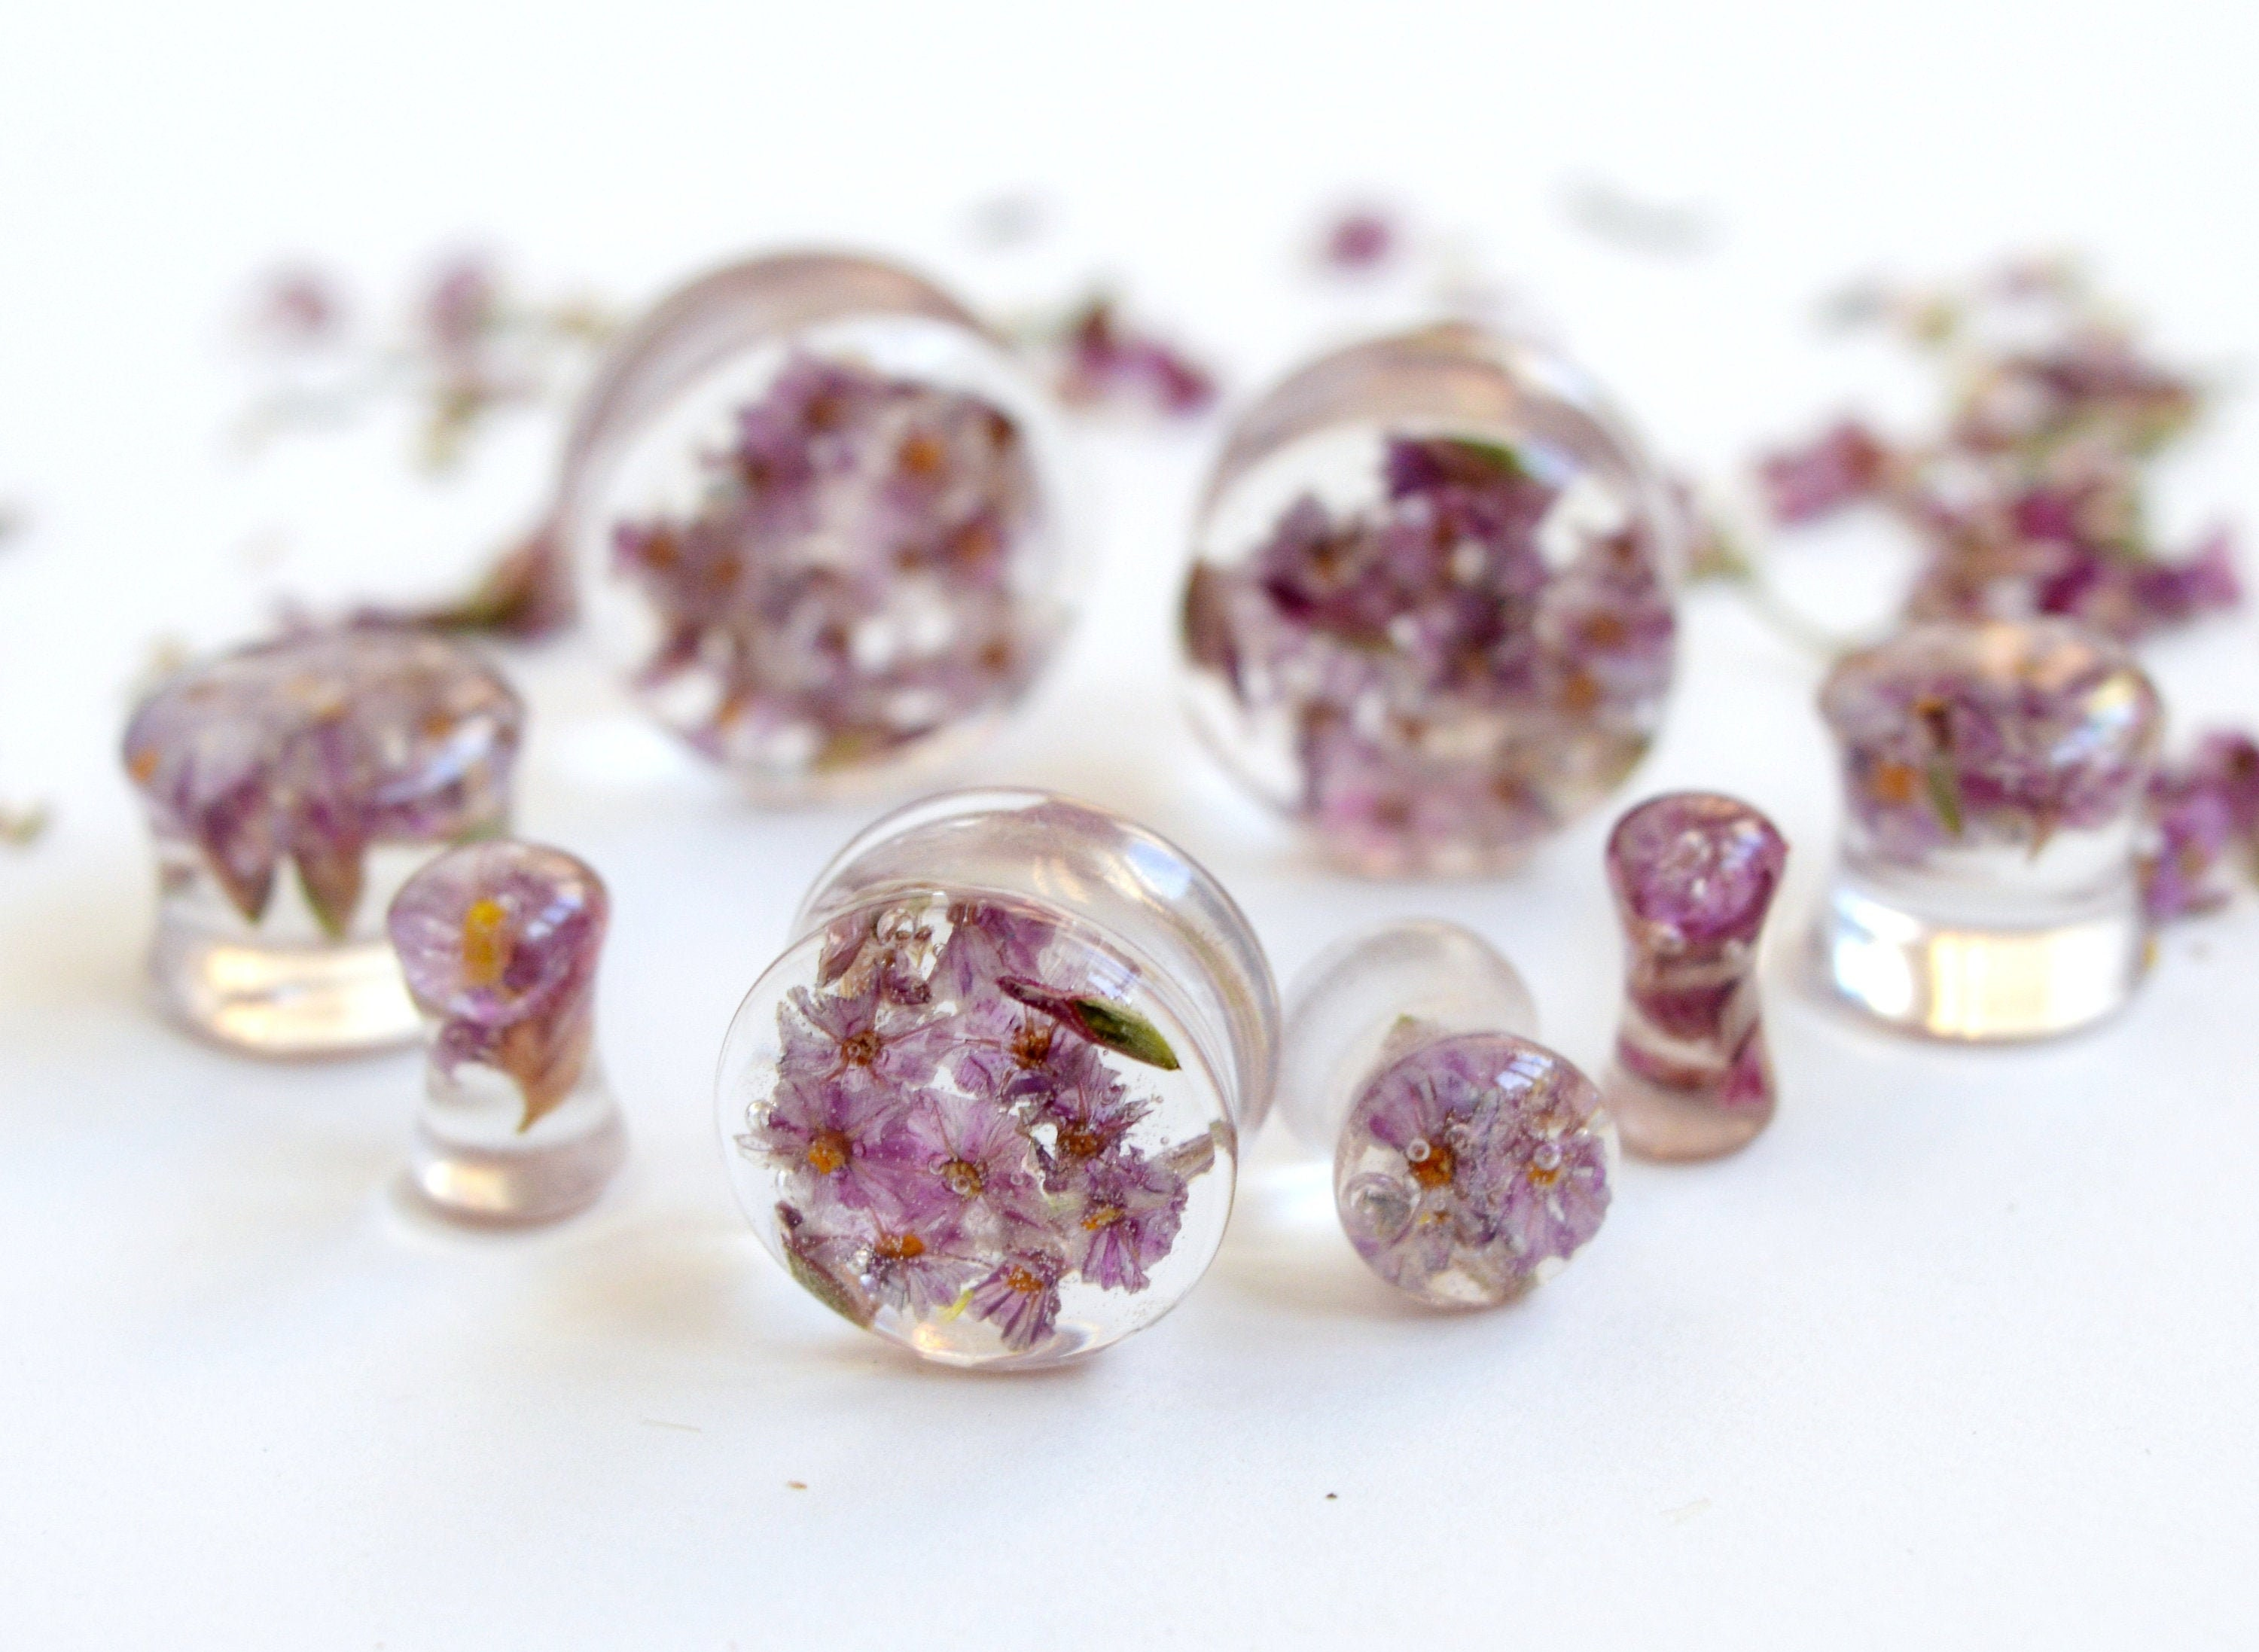 1 x BLACK ACRYLIC EAR FLESH STRETCHING TUNNEL WITH RESIN SET CRYSTALS ~ PINK